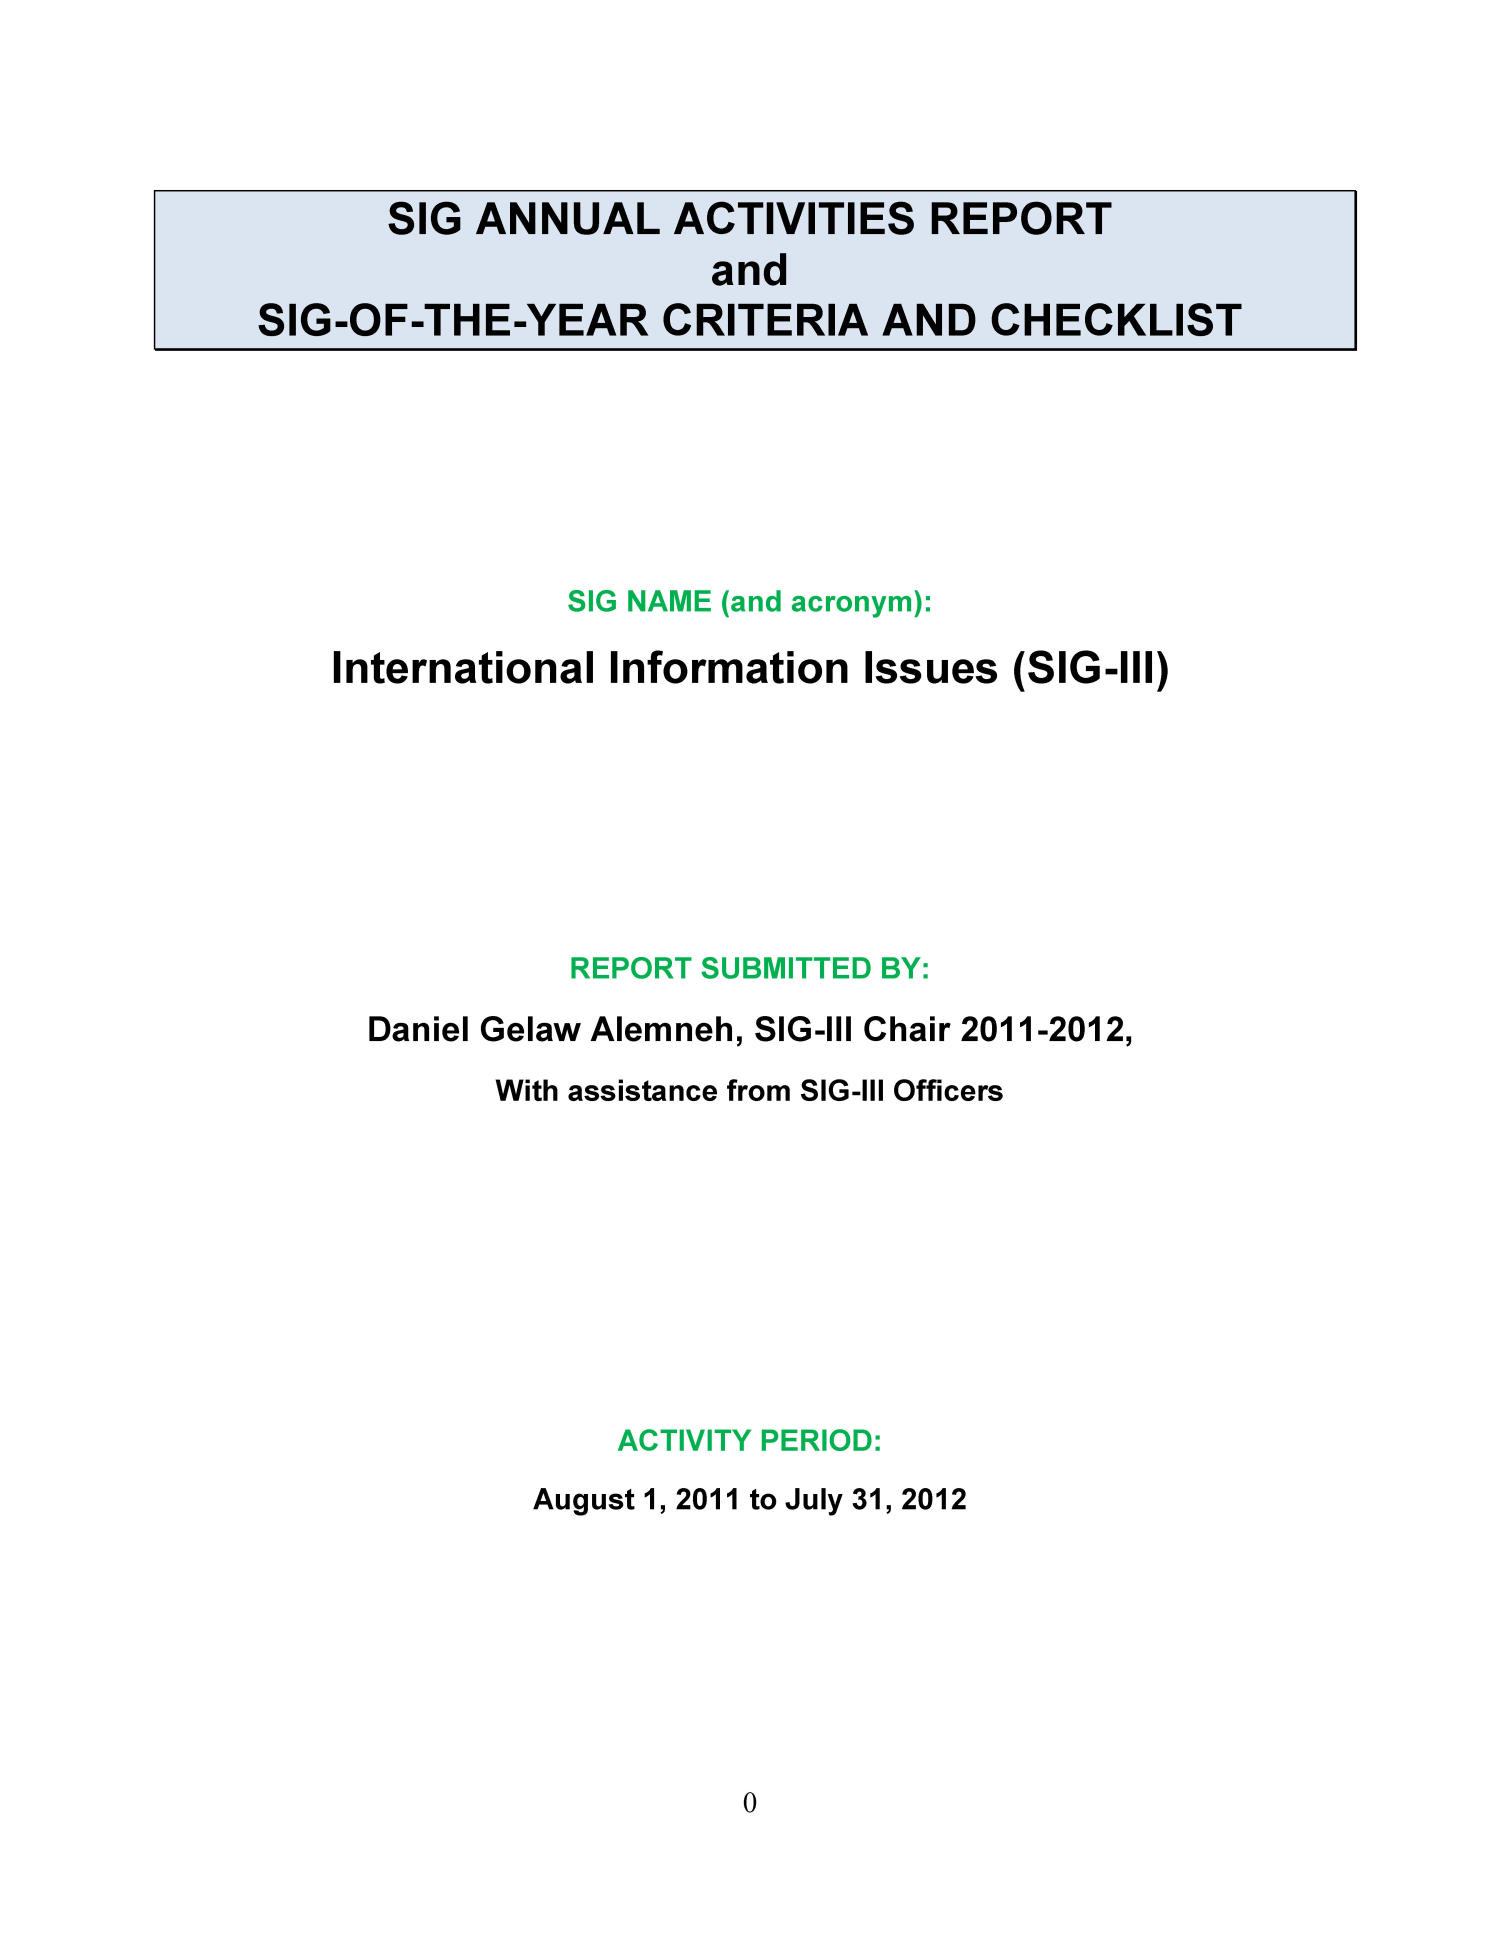 SIG Annual Activities Report and SIG-Of-The-Year Criteria and Checklist: International Information Issues (SIG-III)                                                                                                      Title Page